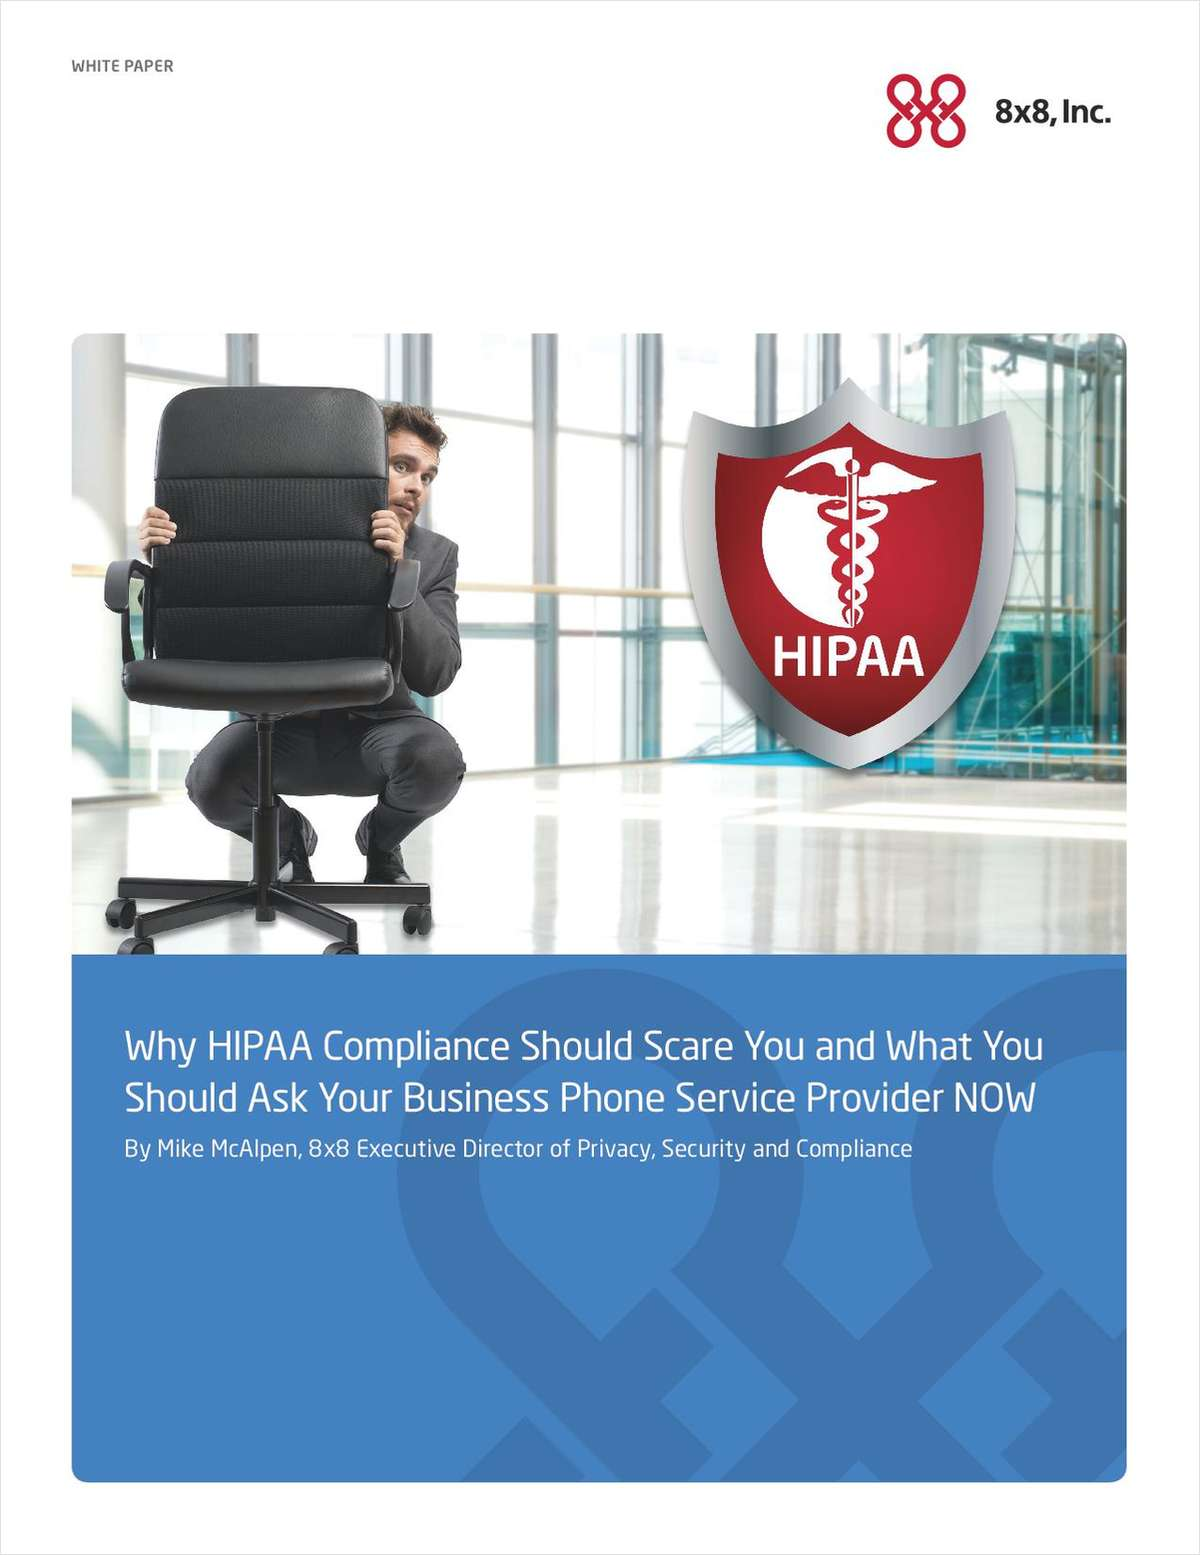 Why HIPAA Compliance Should Scare You and What You Should Ask Your Business Phone Service Provider NOW